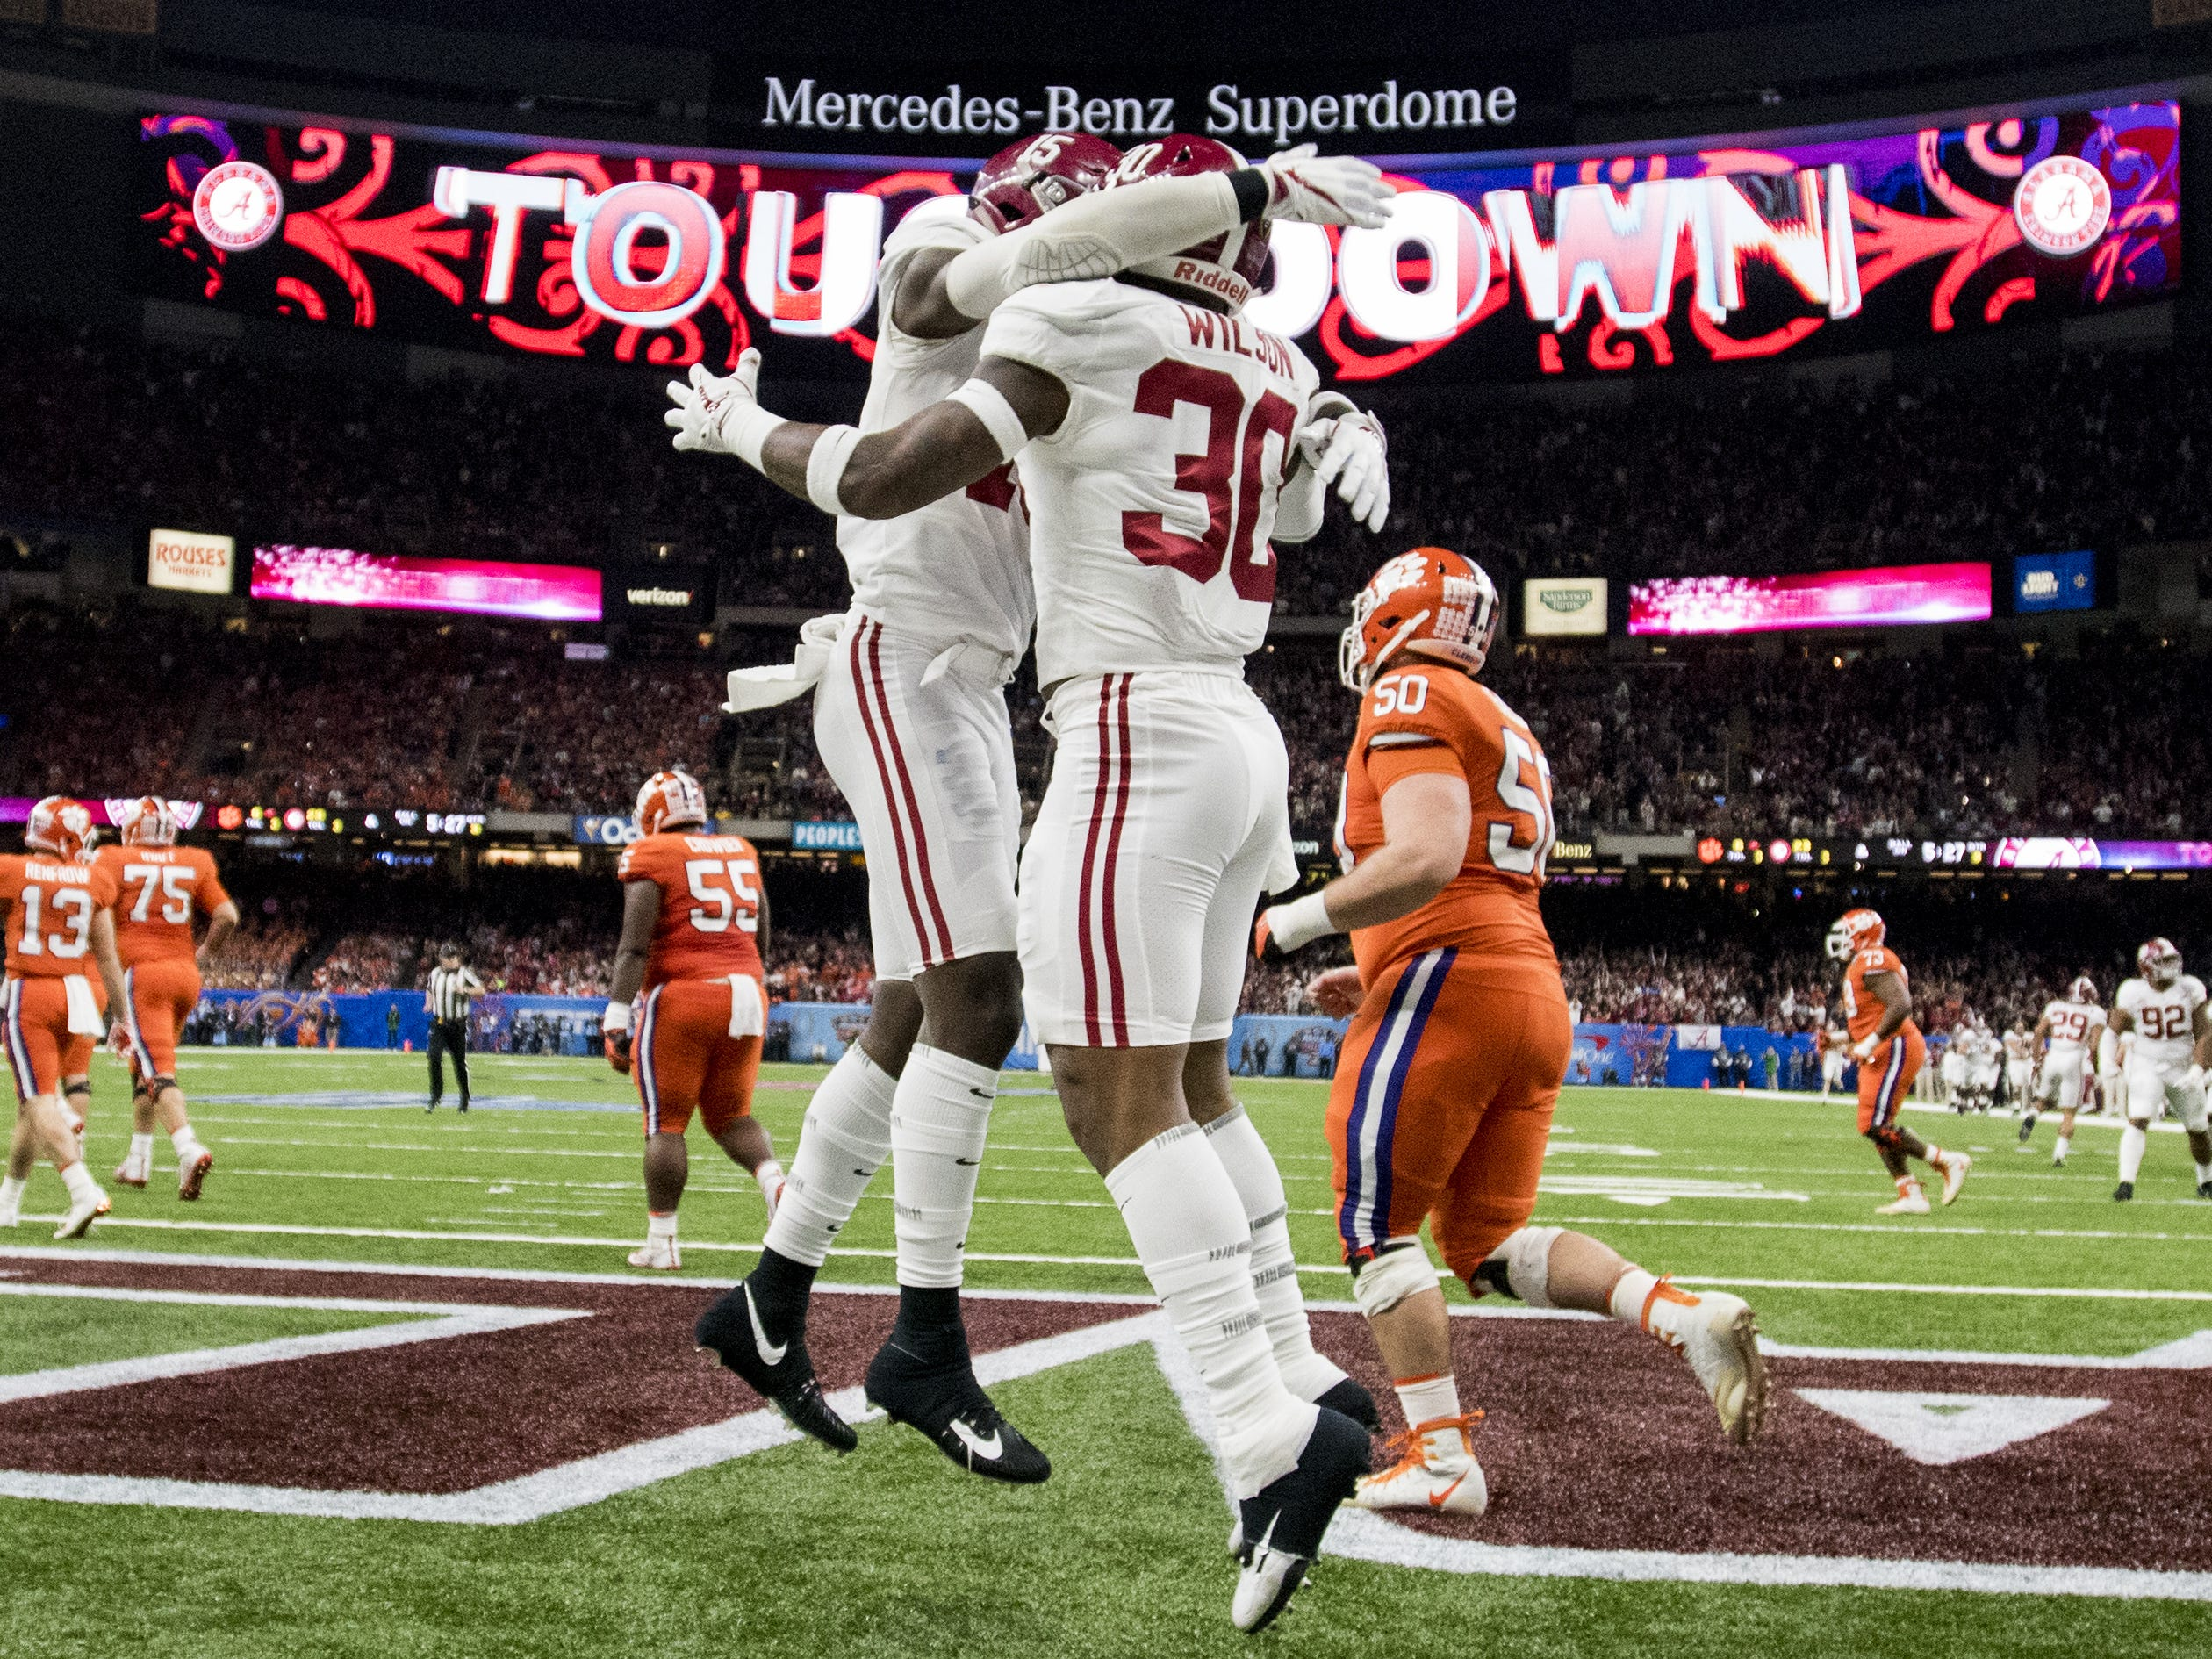 Alabama linebacker Mack Wilson (30) celebrates his interception touchdown against Clemson in the Sugar Bowl at the Superdome in New Orleans, La. on Monday January 1, 2018. (Mickey Welsh / Montgomery Advertiser)